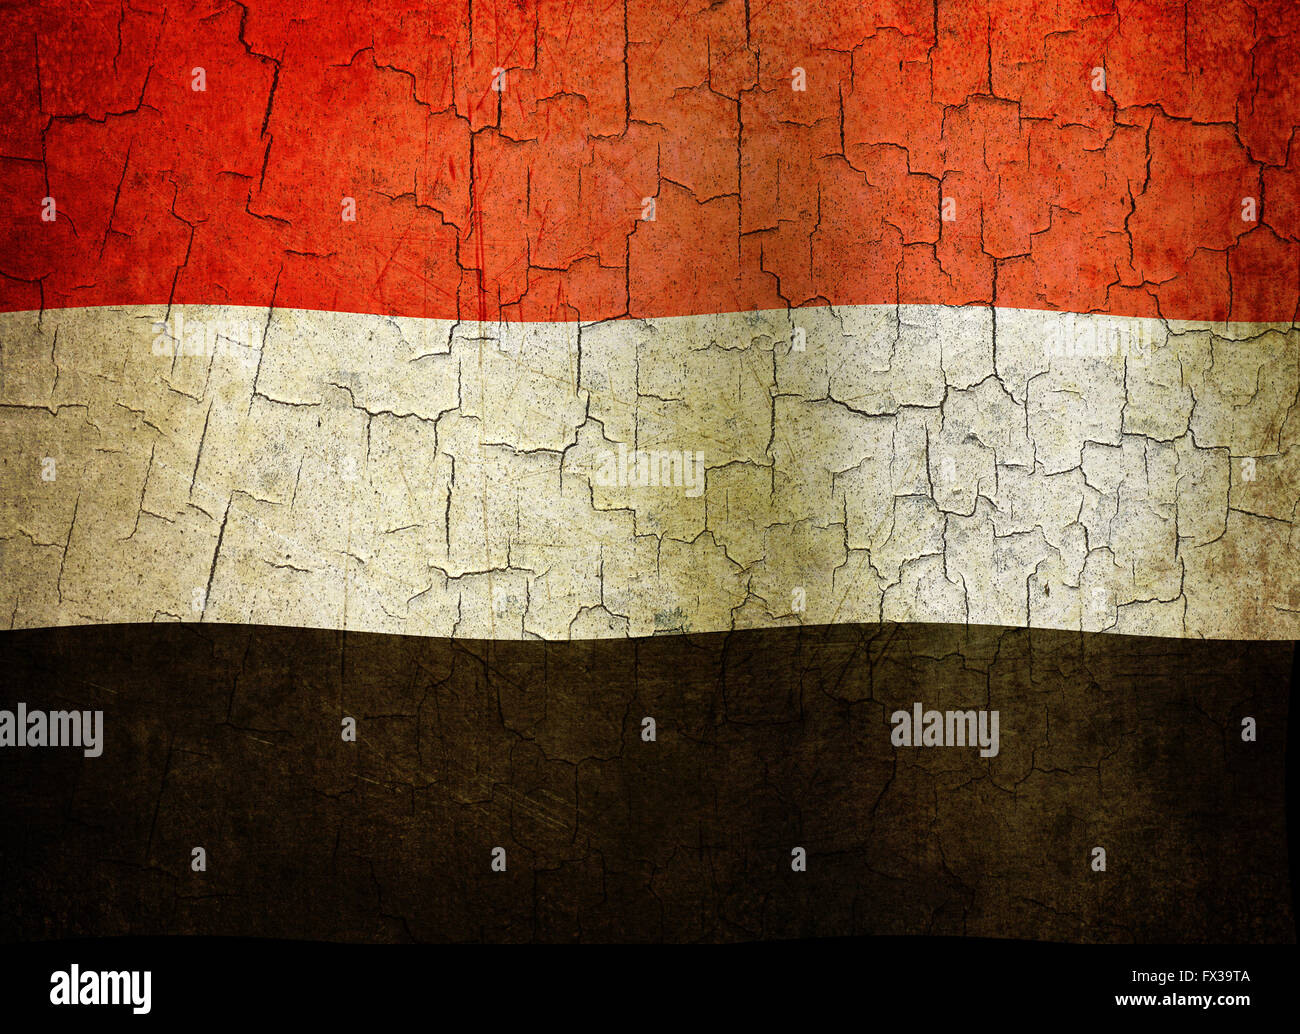 Yemen flag on an old cracked wall Stock Photo